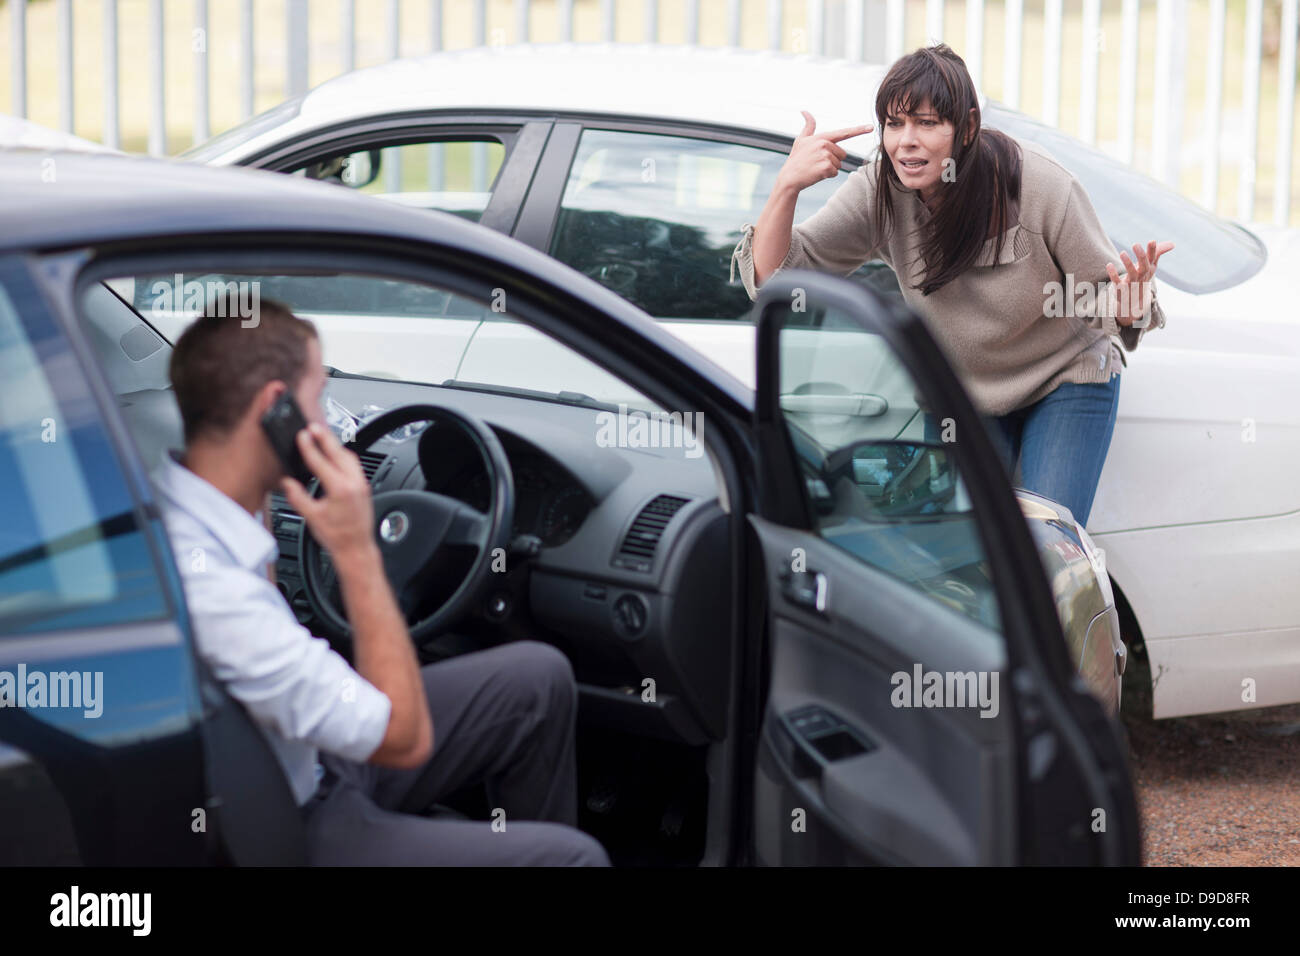 Woman reacting after car accident - Stock Image